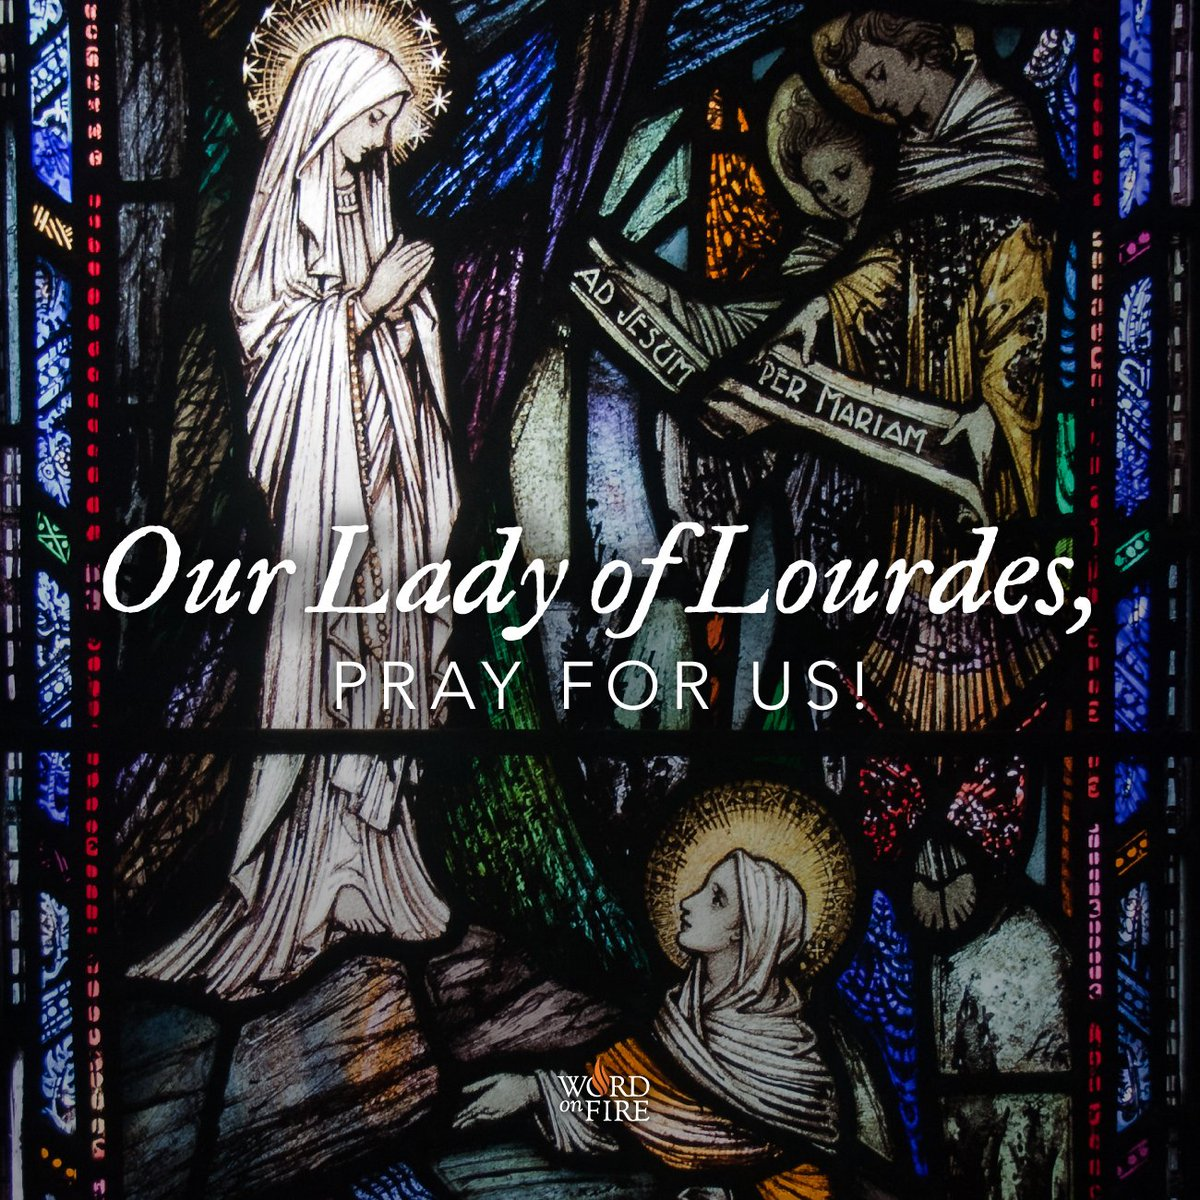 Bishop Robert Barron's photo on our lady of lourdes